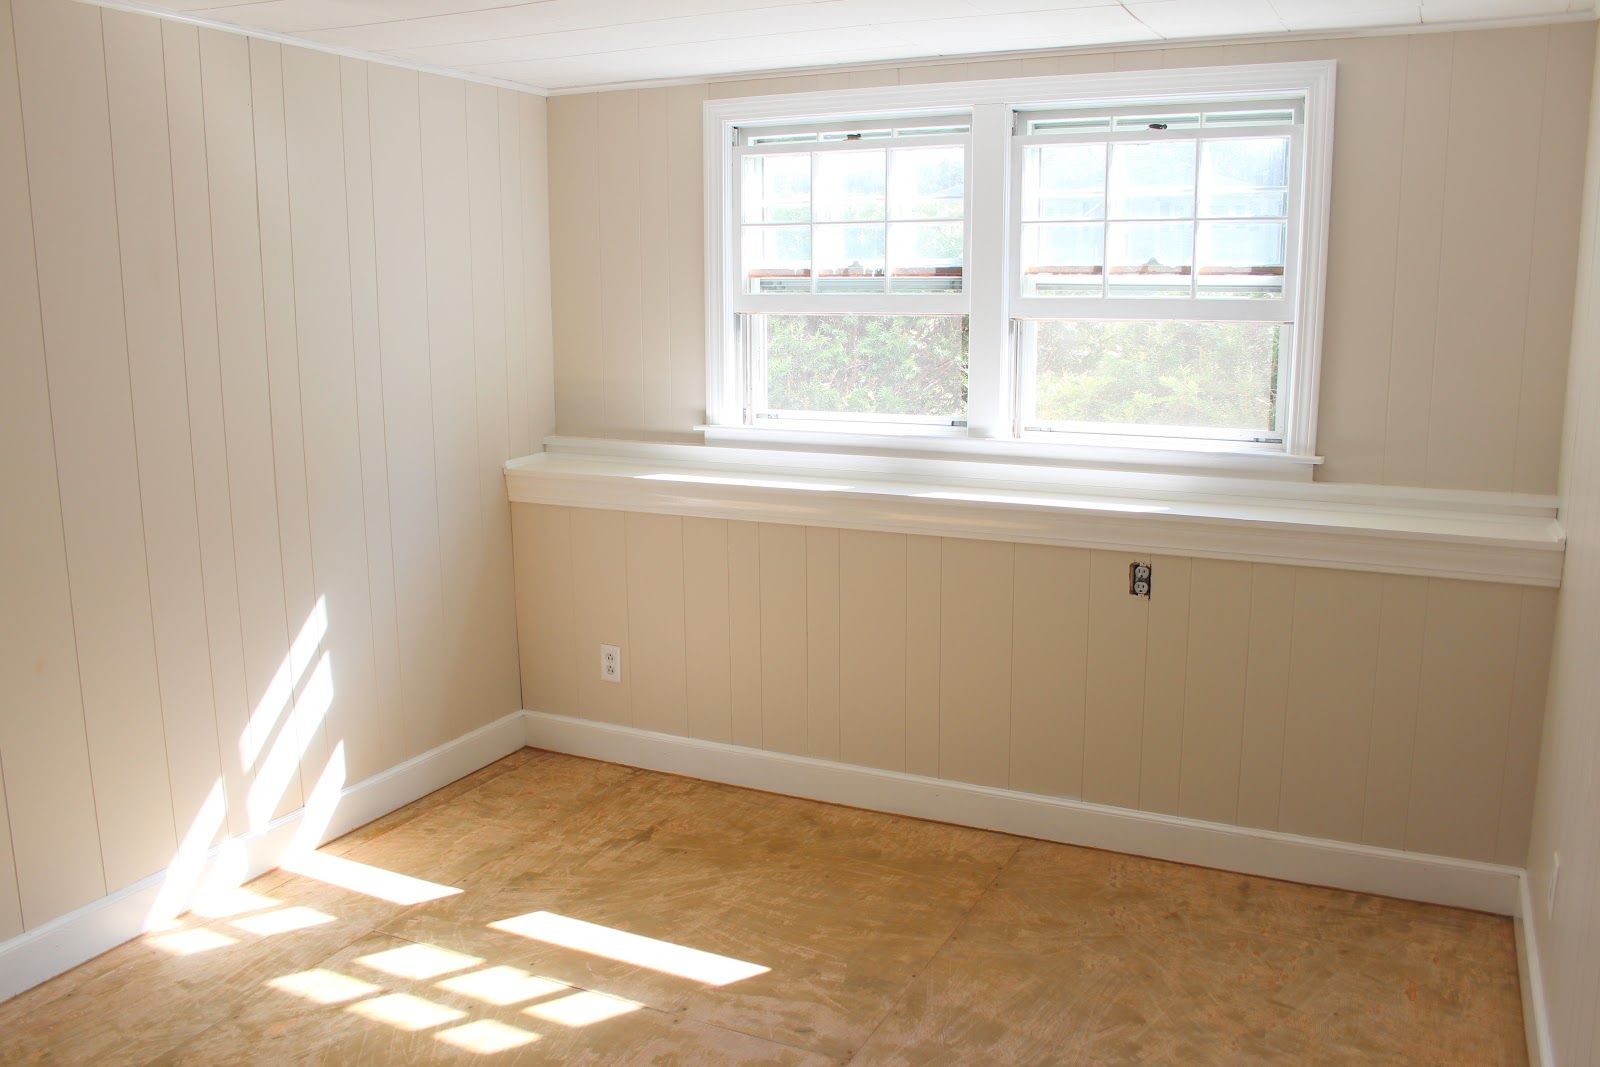 Interior Panel Paint: Paint Wood Paneling - Light Sand Color